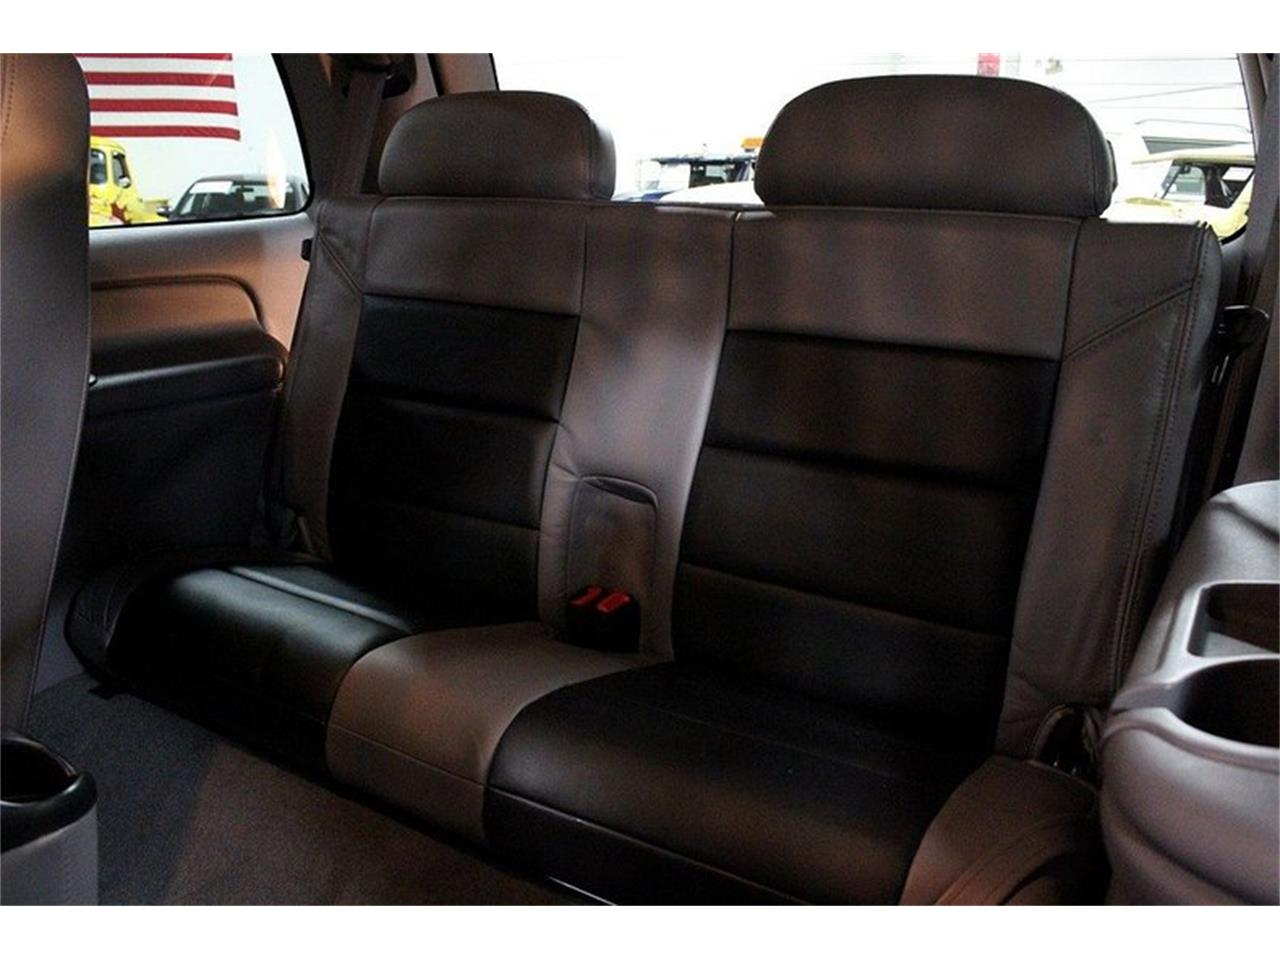 Large Picture of 1999 Dodge Durango Shelby SP-360 located in Kentwood Michigan - $31,900.00 Offered by GR Auto Gallery - MB1Y